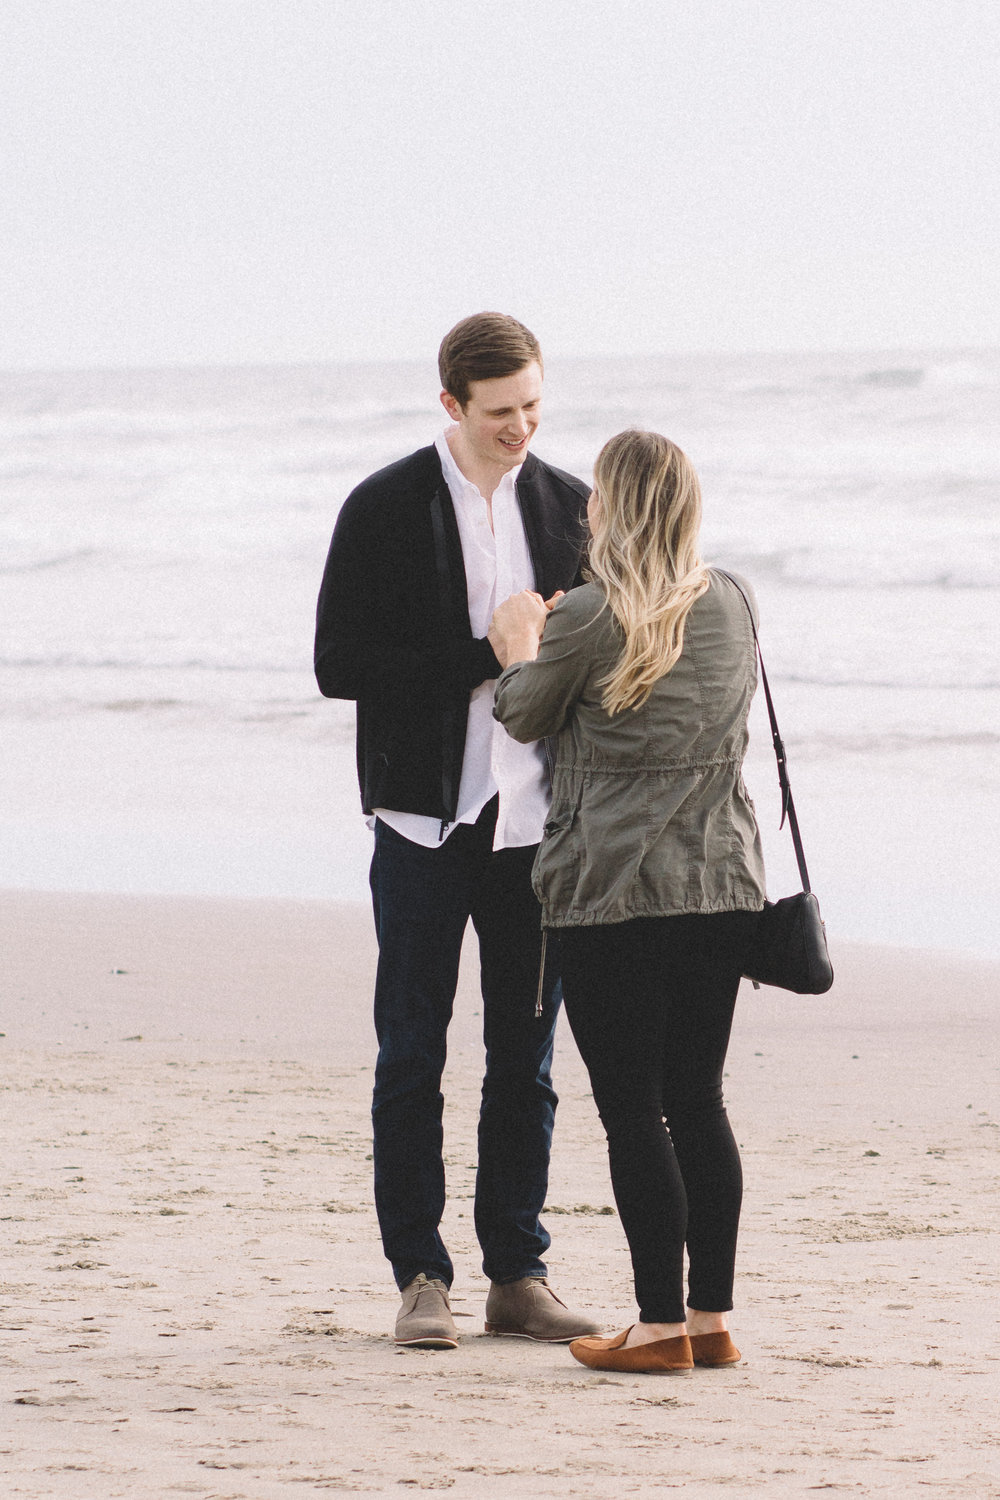 Cannon Beach Proposal Photography-6.jpg